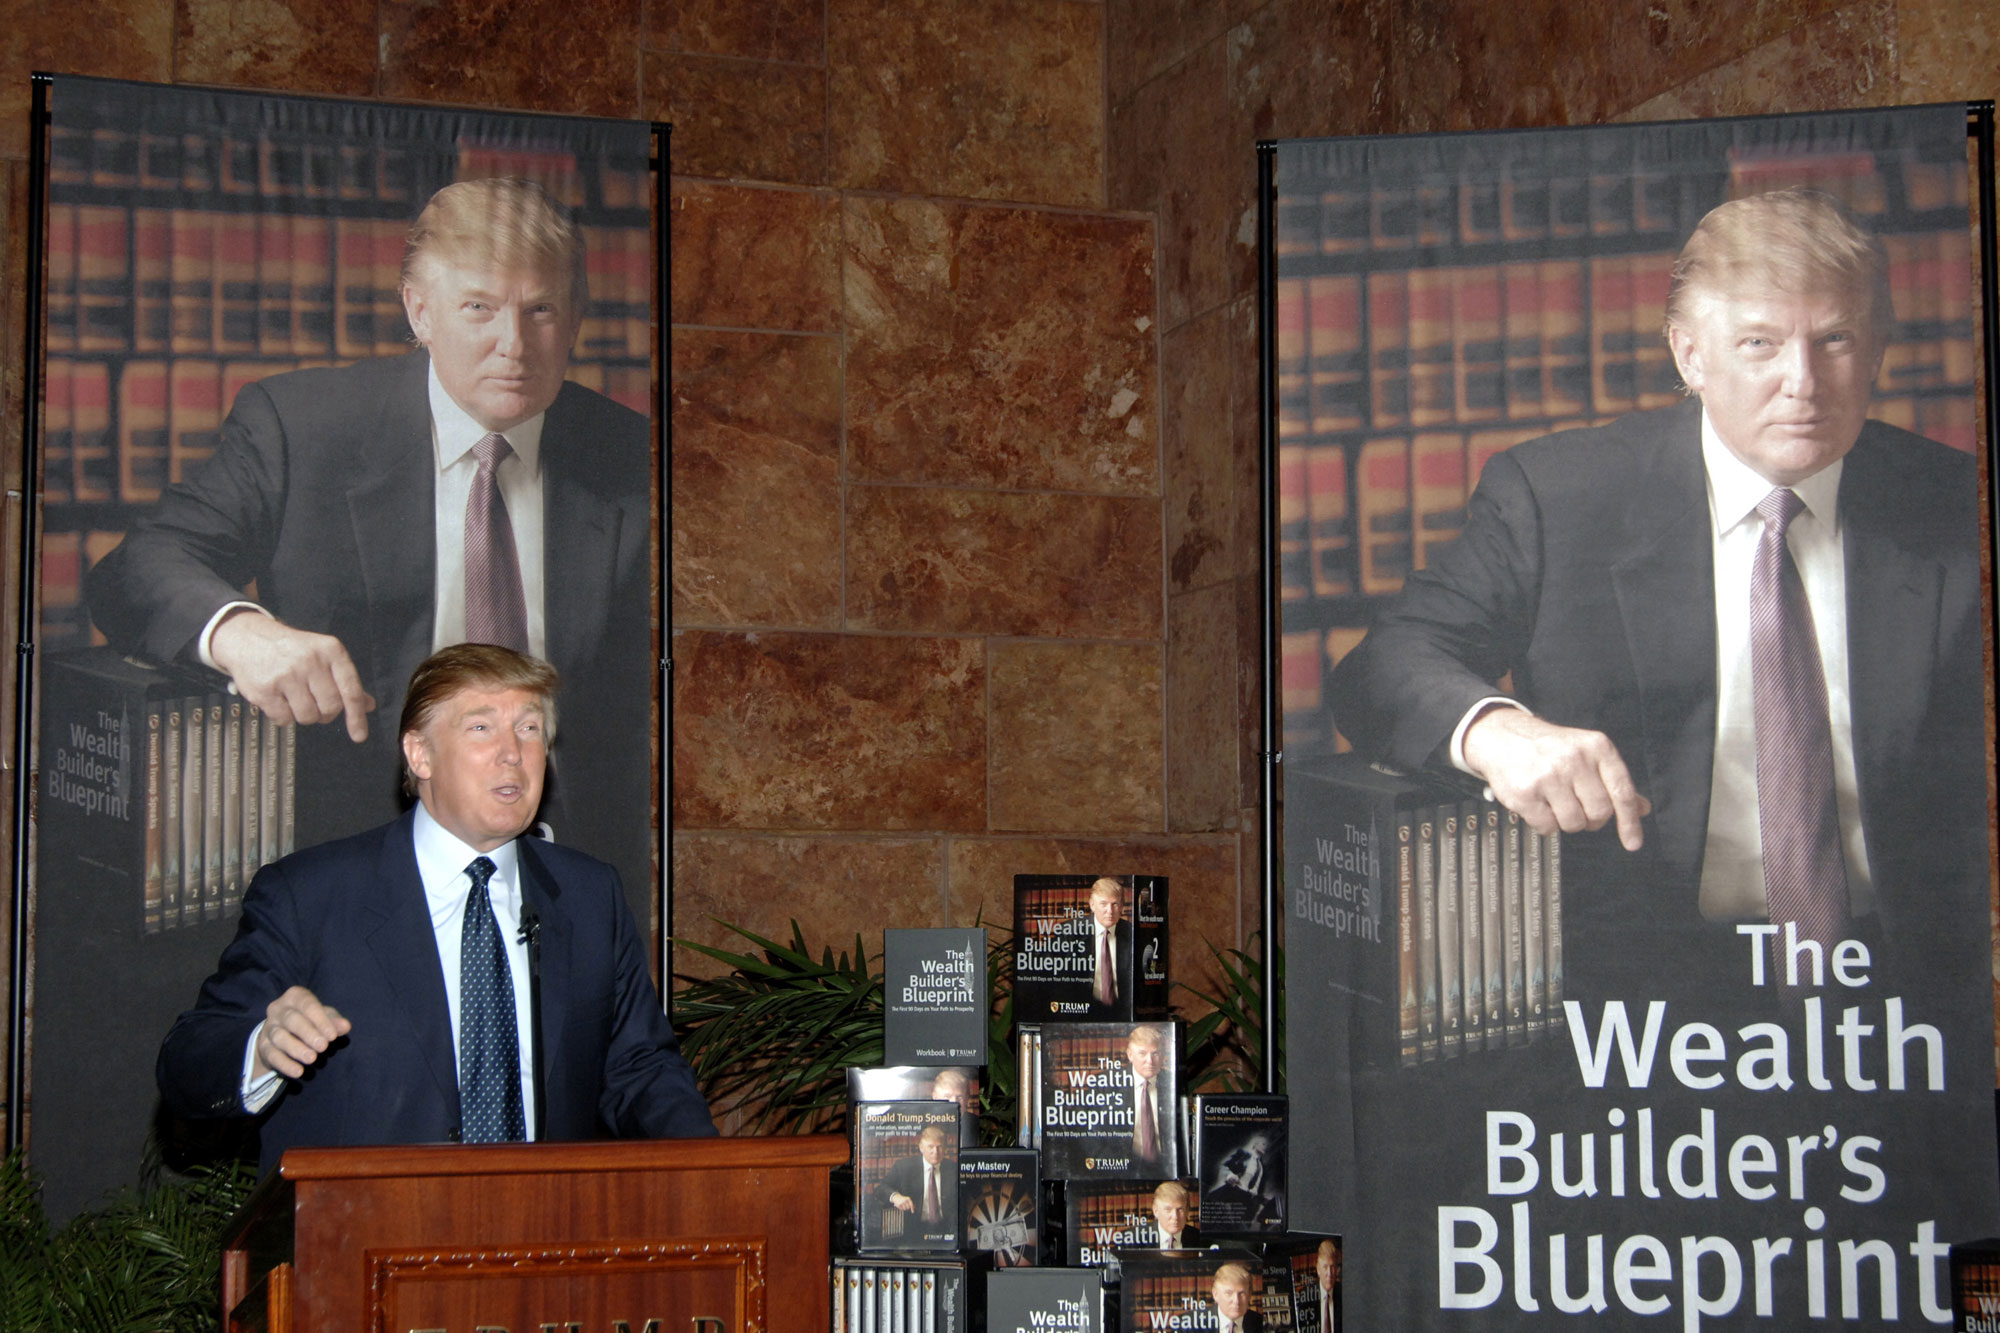 Donald Trump during Donald Trump Establishes Trump University - May 23, 2005 at Trump Towers in New York City, New York, United States. (Photo by Carvalho/FilmMagic)